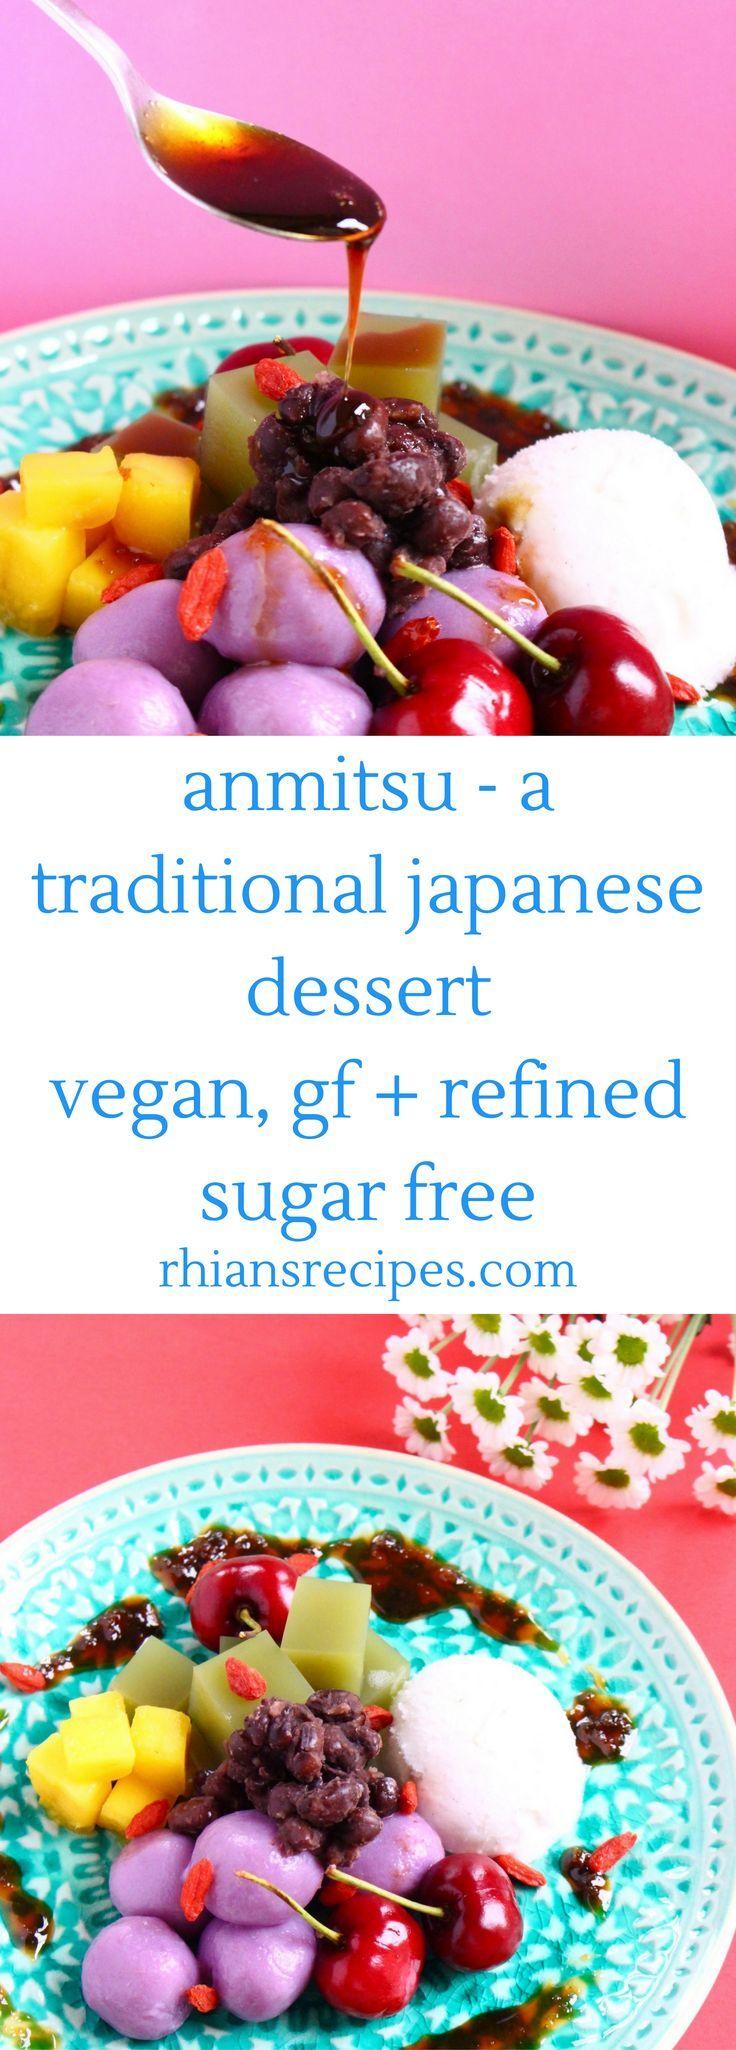 This Vegan Anmitsu is a traditional Japanese dessert. It's the perfect colourful and refreshing summer treat – cubes of green matcha jelly, pillows of purple sweet potato mochi and sweet red bean paste paired with vanilla ice cream, all topped off with some sticky date syrup. Gluten-free and refined sugar free.